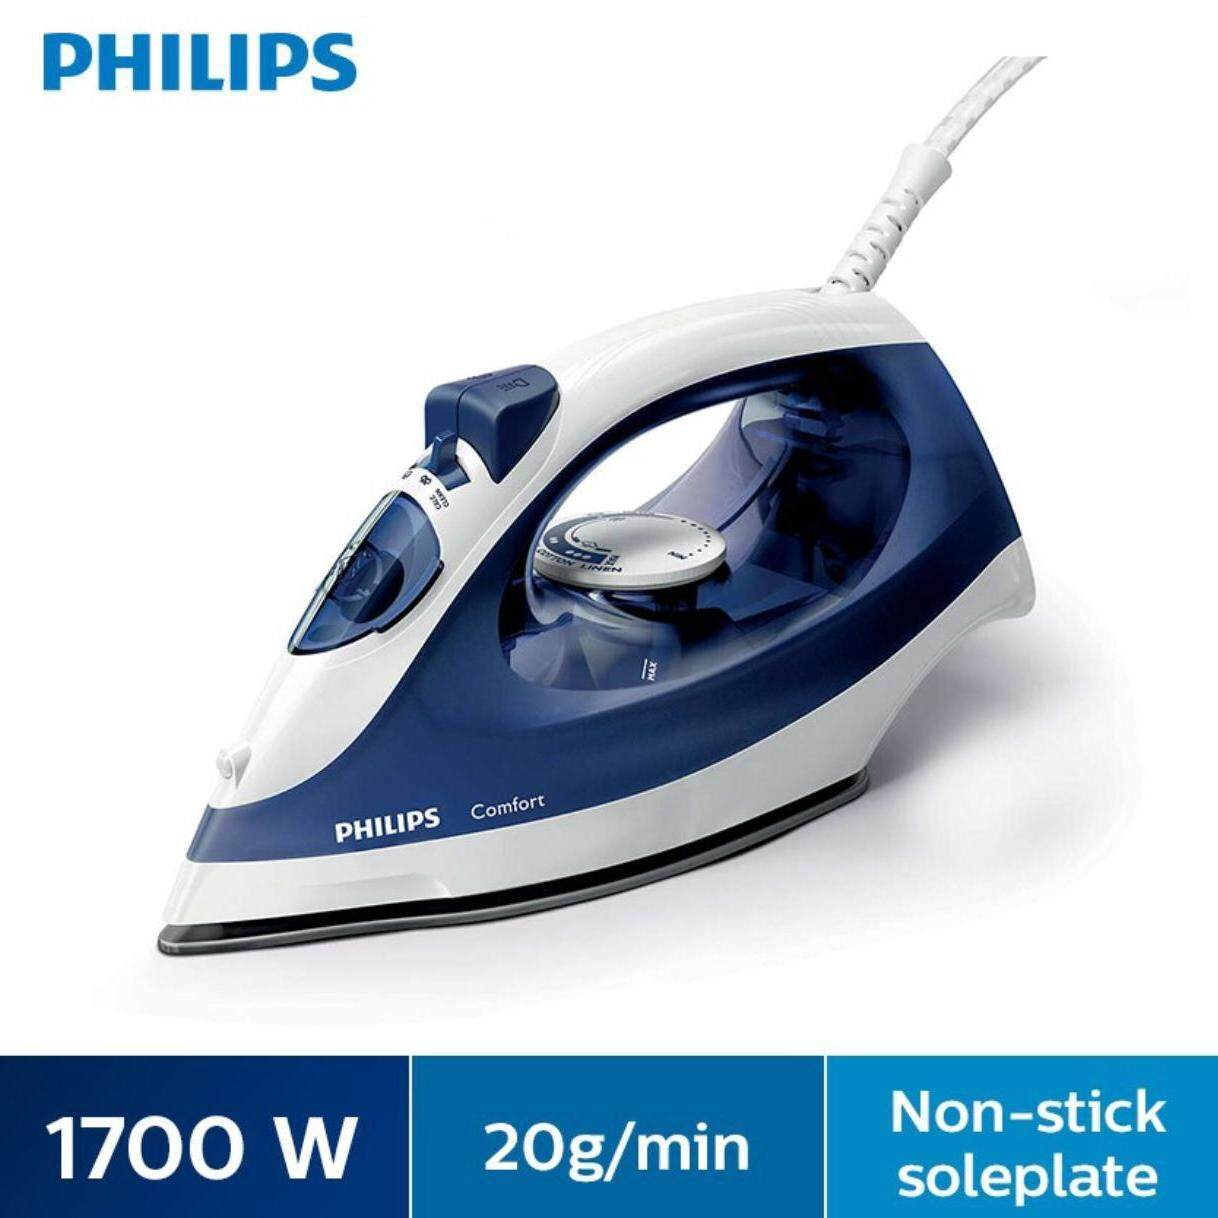 Philips Steam Iron Gc1430/20 By Lazada Retail Tech-Mall.